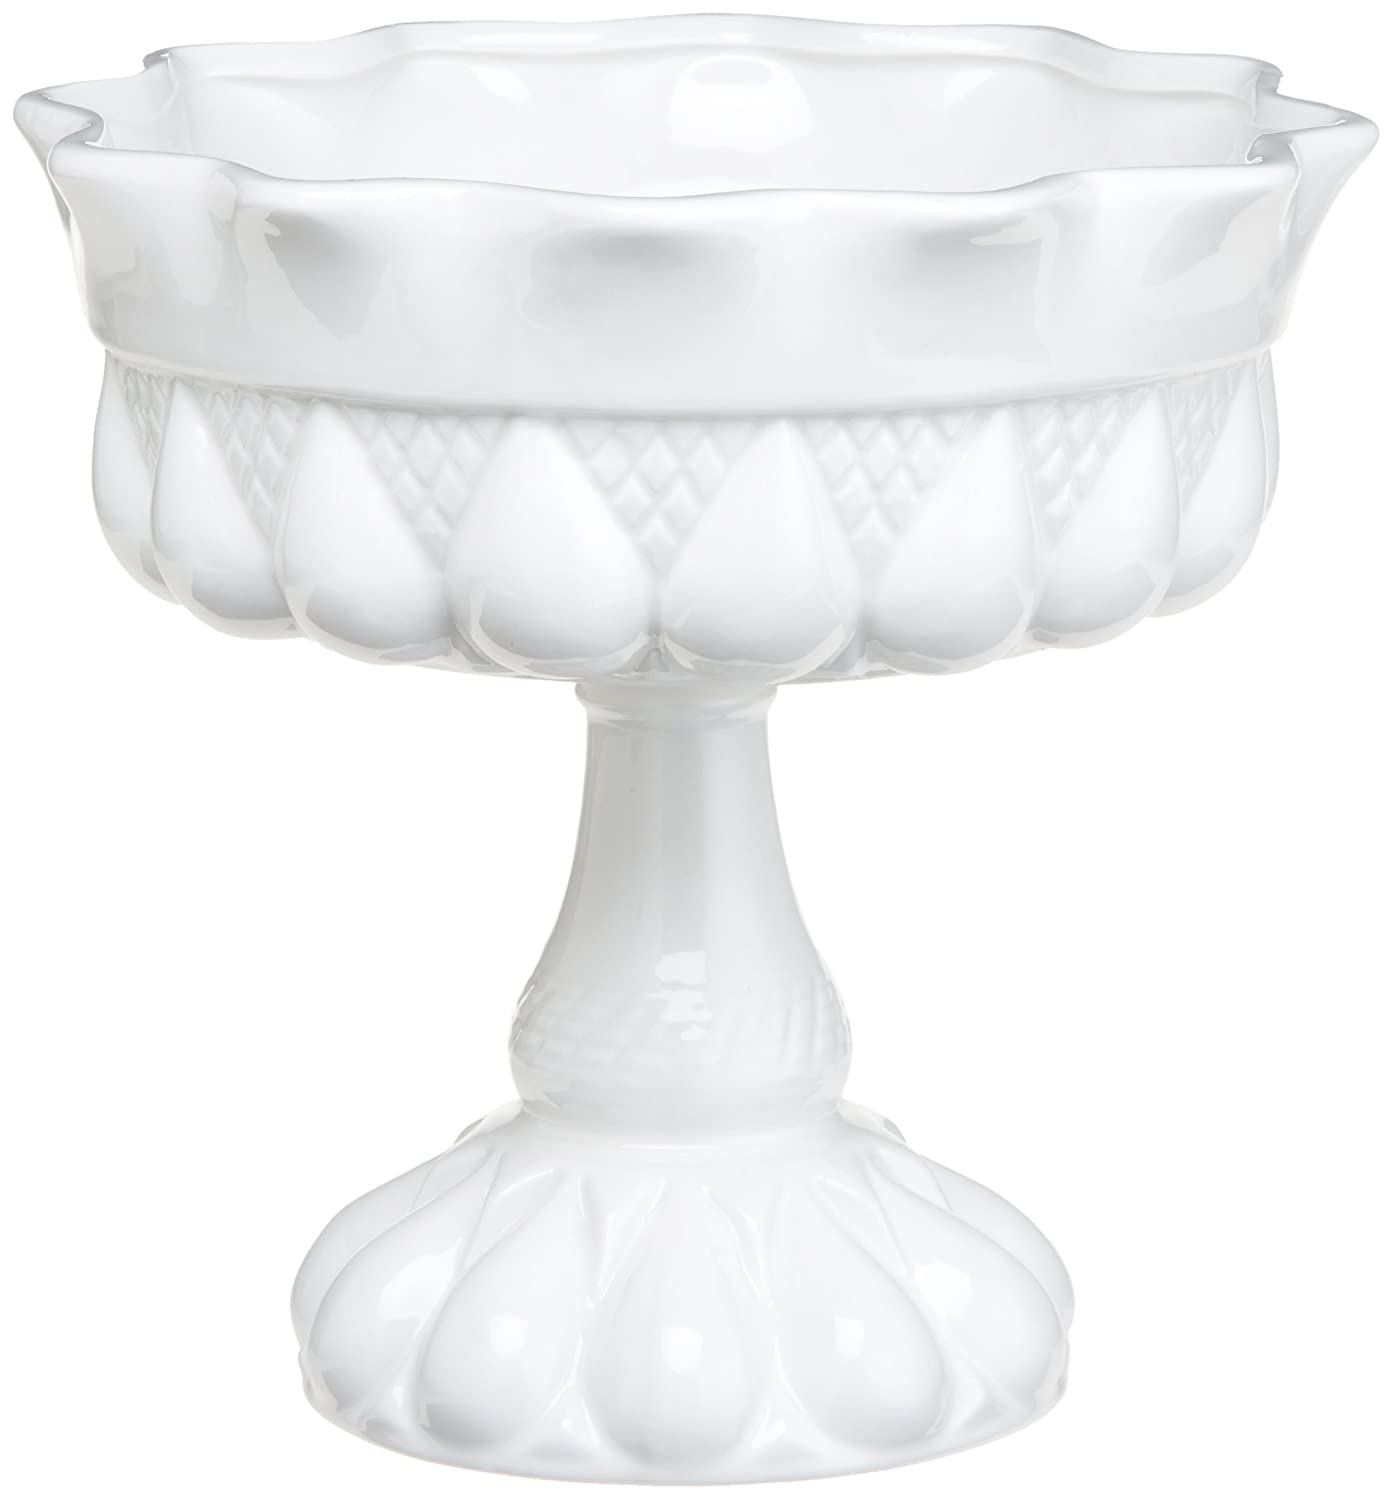 Rosanna Decor Bon Bon Footed Round Bowl White 51146